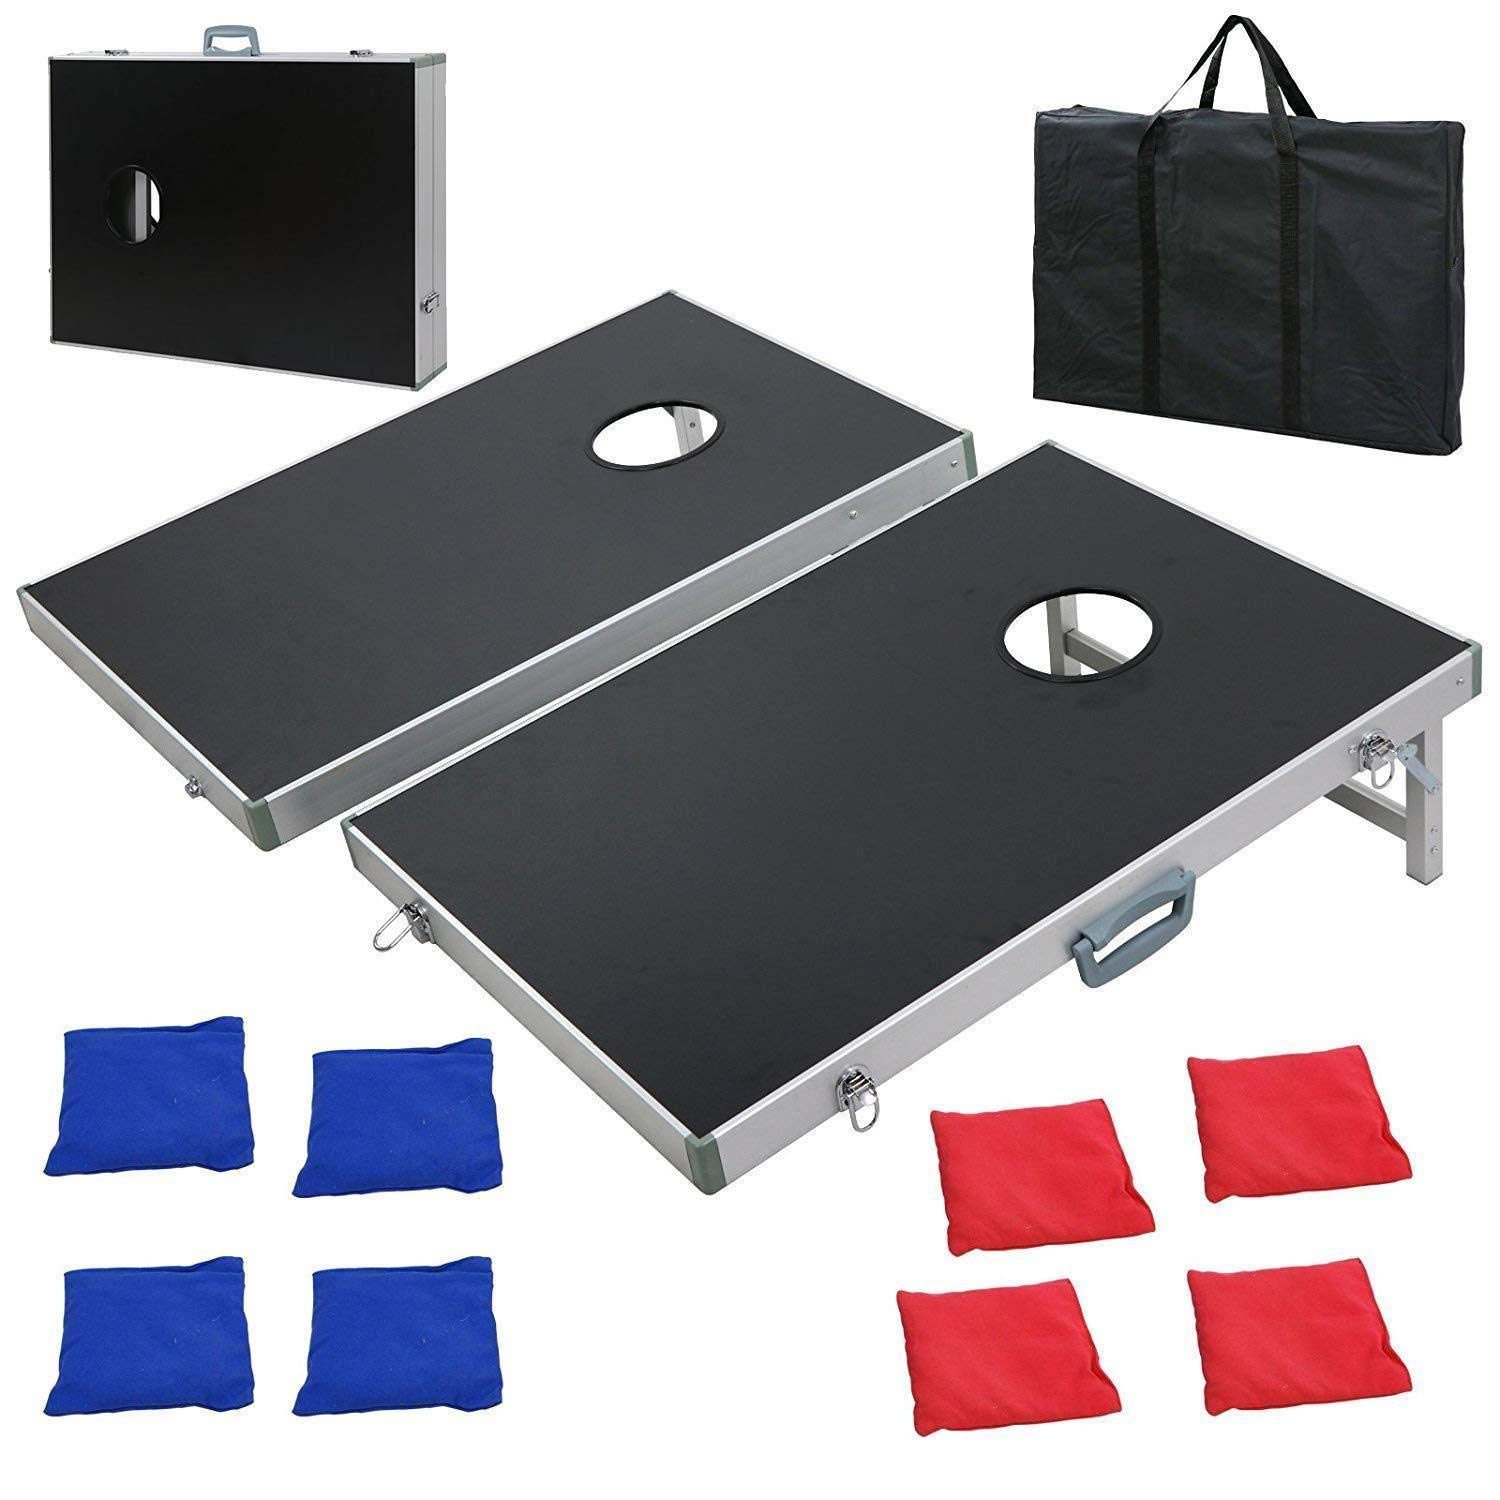 nitipezzo Durable Aluminum Construction and Waterproof Cornhole Bean Bag Toss Game Set Aluminum Frame Portable Design with Carrying Case by nitipezzo